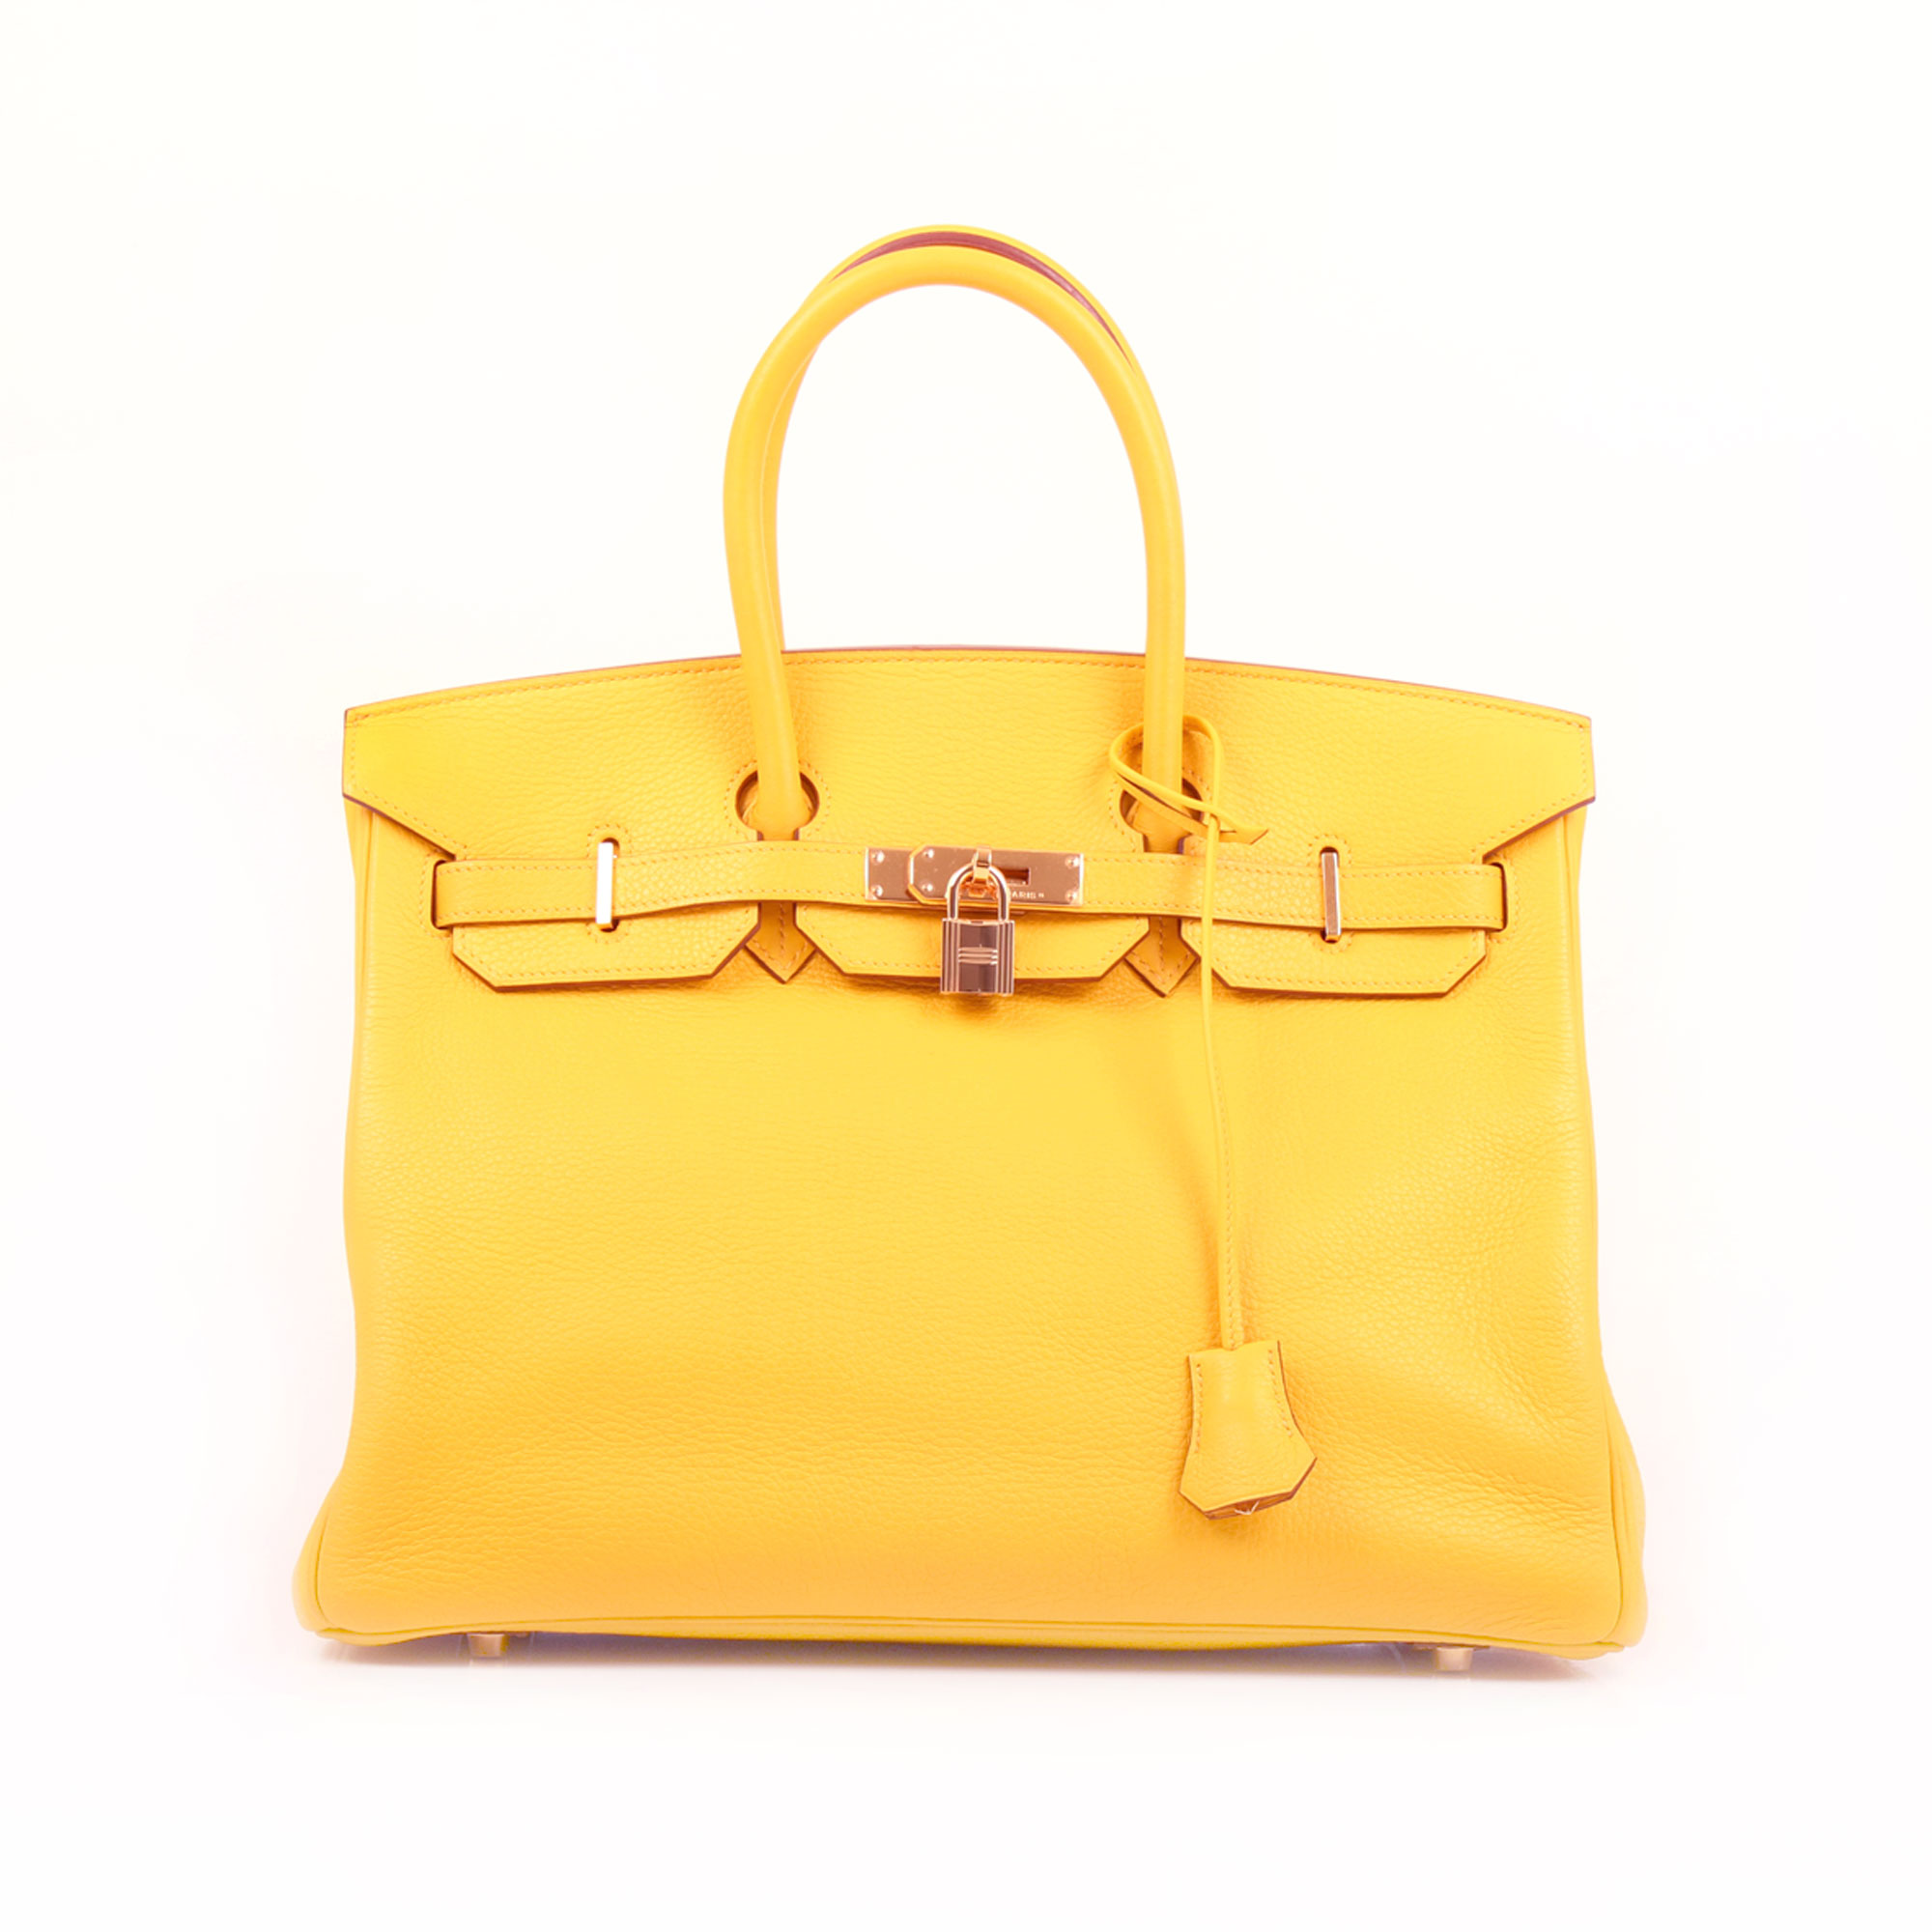 Front image of hermes birkin 35 jaune togo leather